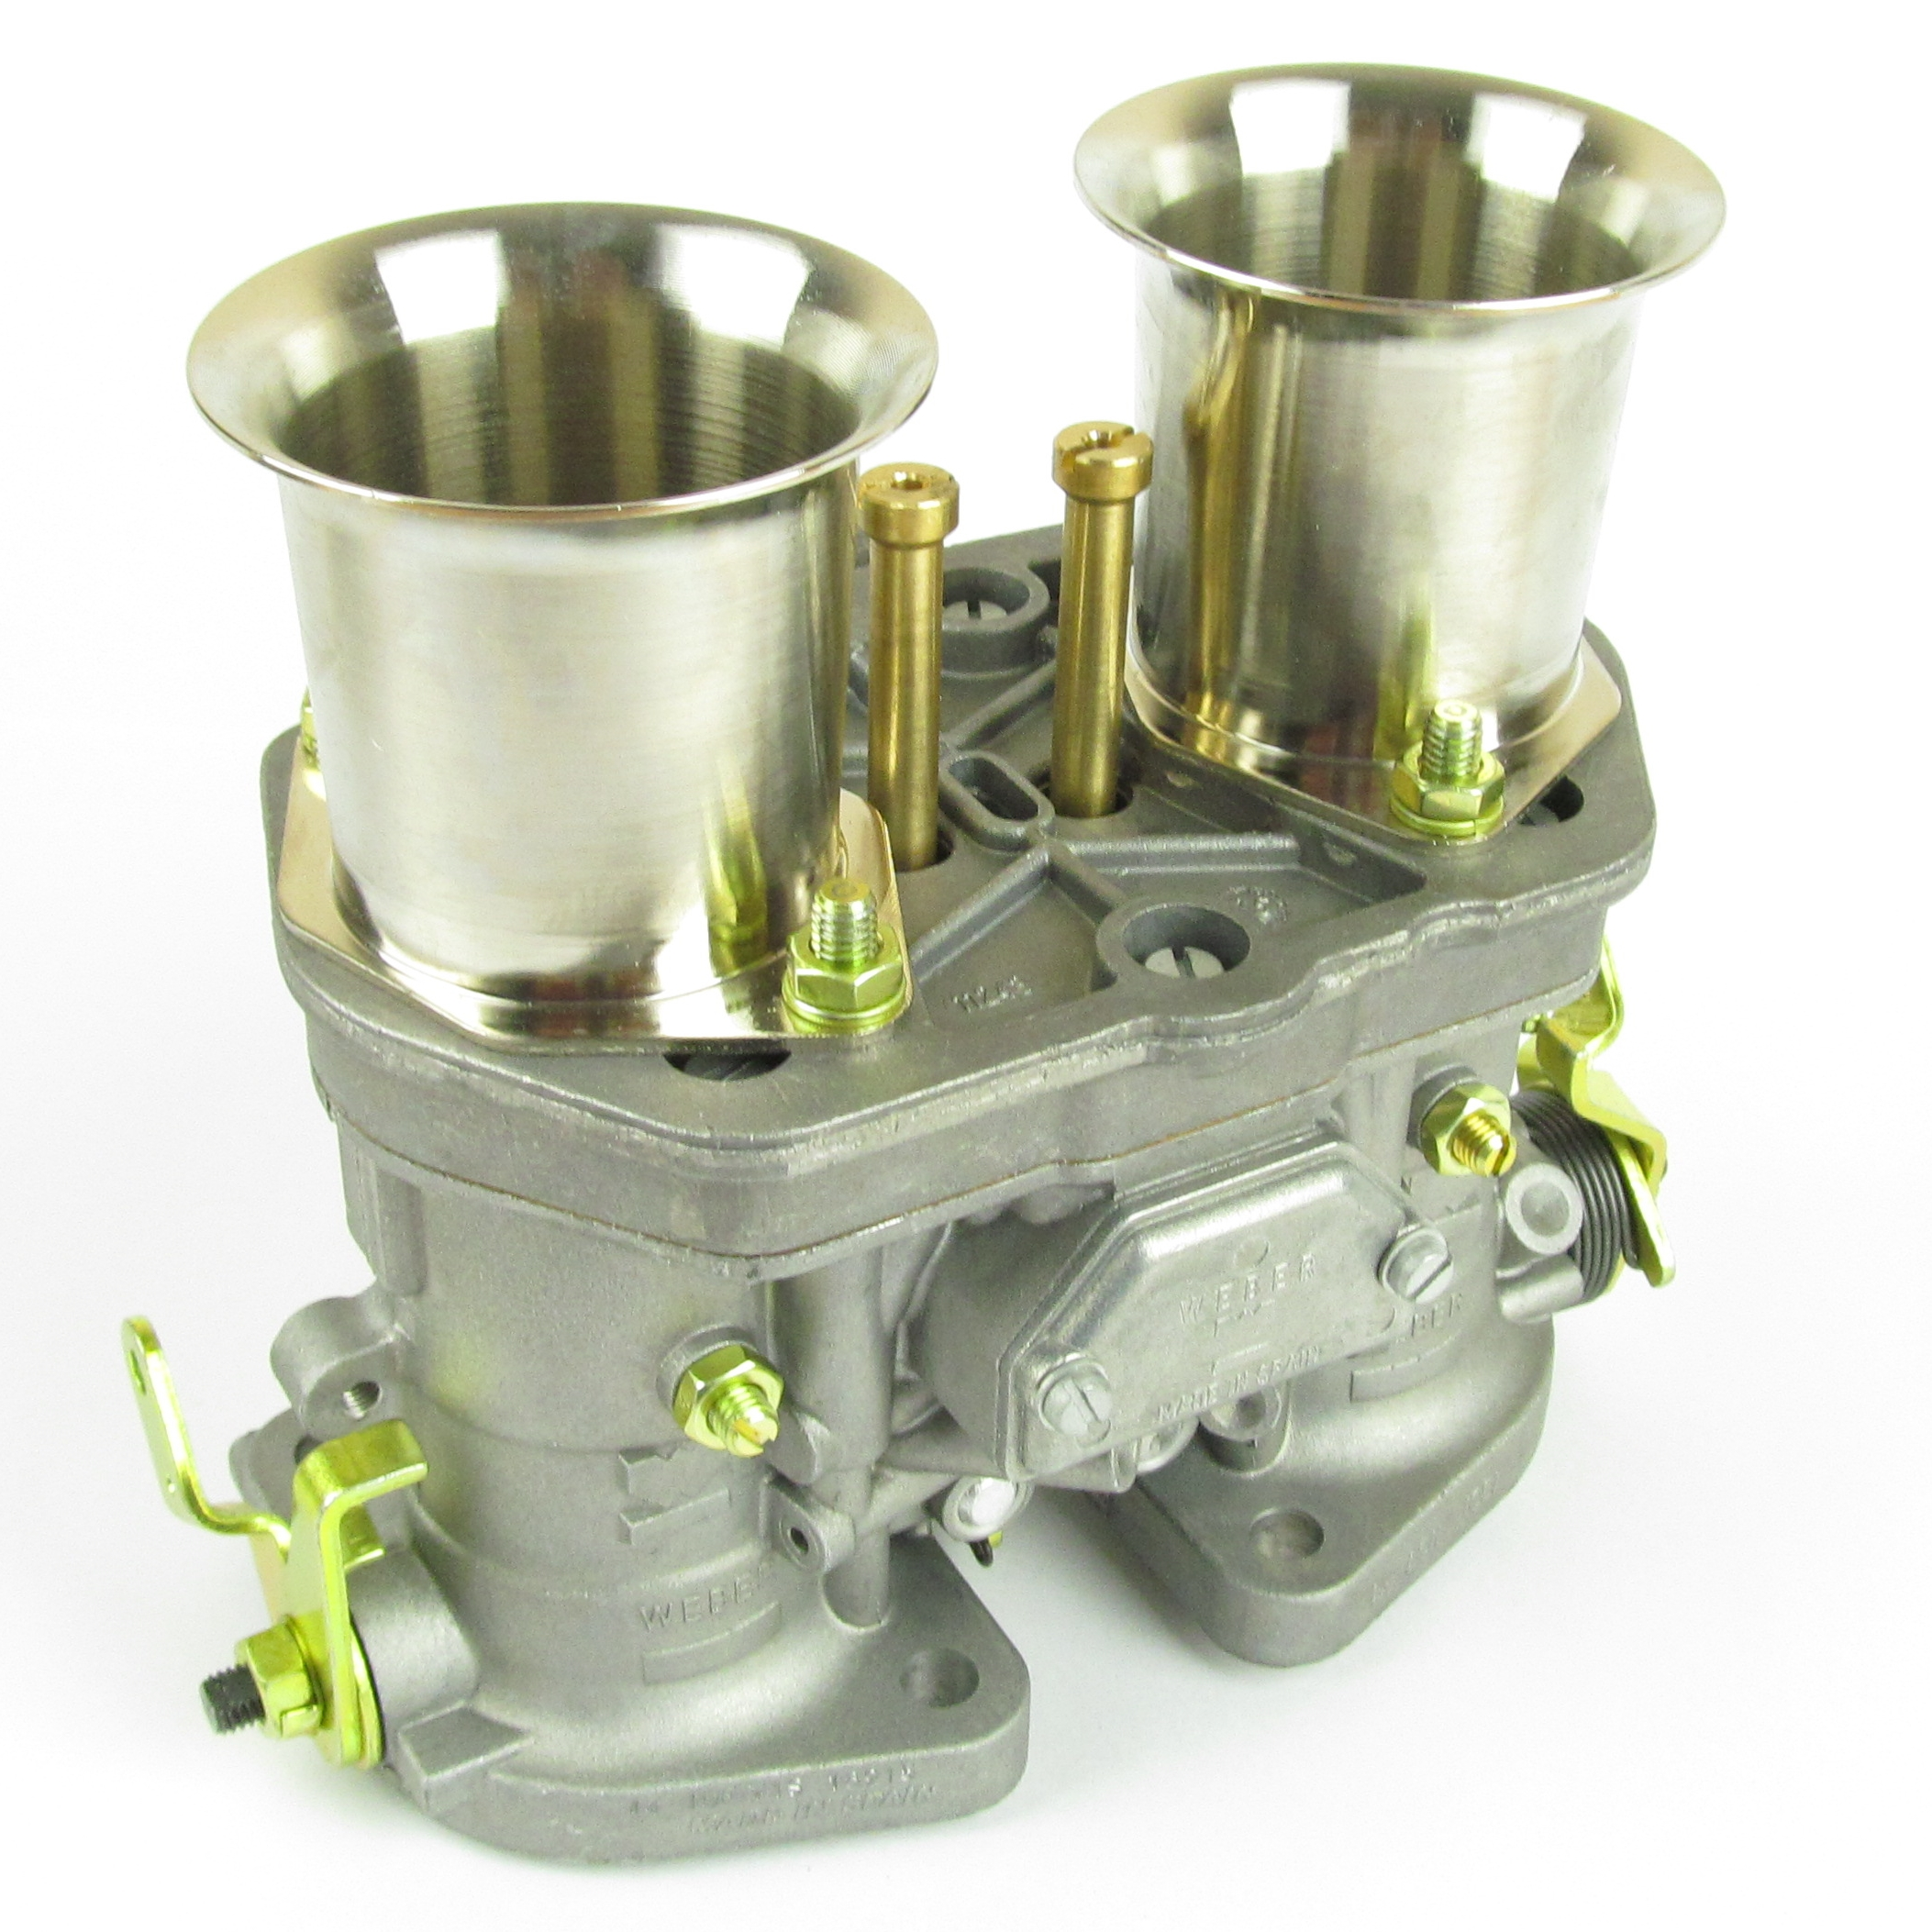 WEBER 44 IDF TWIN CARB FIAT / FORD / ROVER / PORSCHE / AIRCOOLED VW BEETLE / CAMPER ETC ..